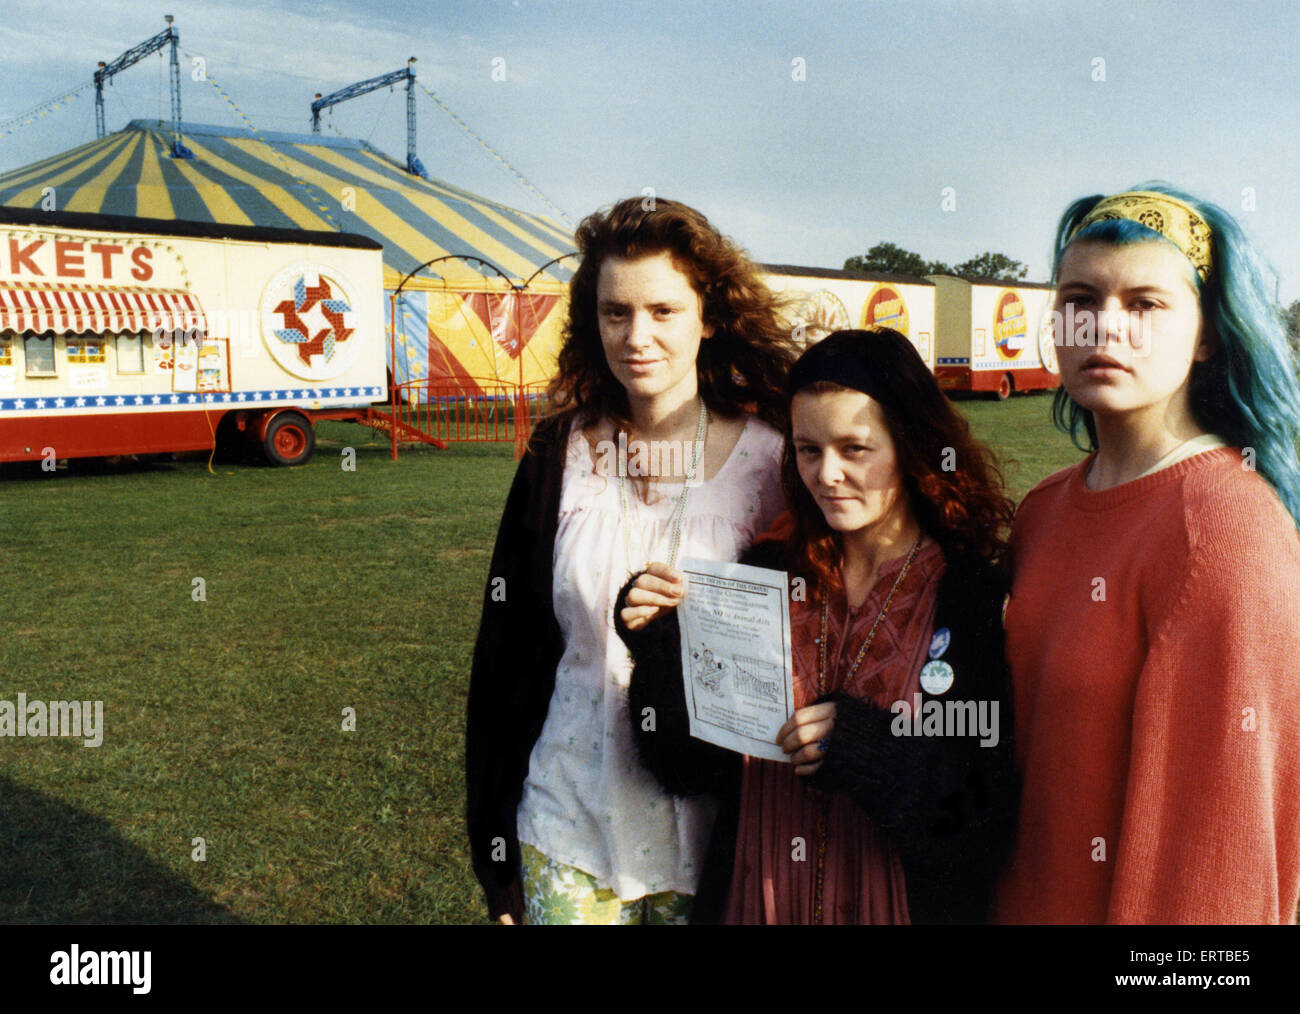 Animal rights campaigners with one of their leaflets, protesting at Gerry Cottle's Circus, Preston Park, Stockton. - Stock Image